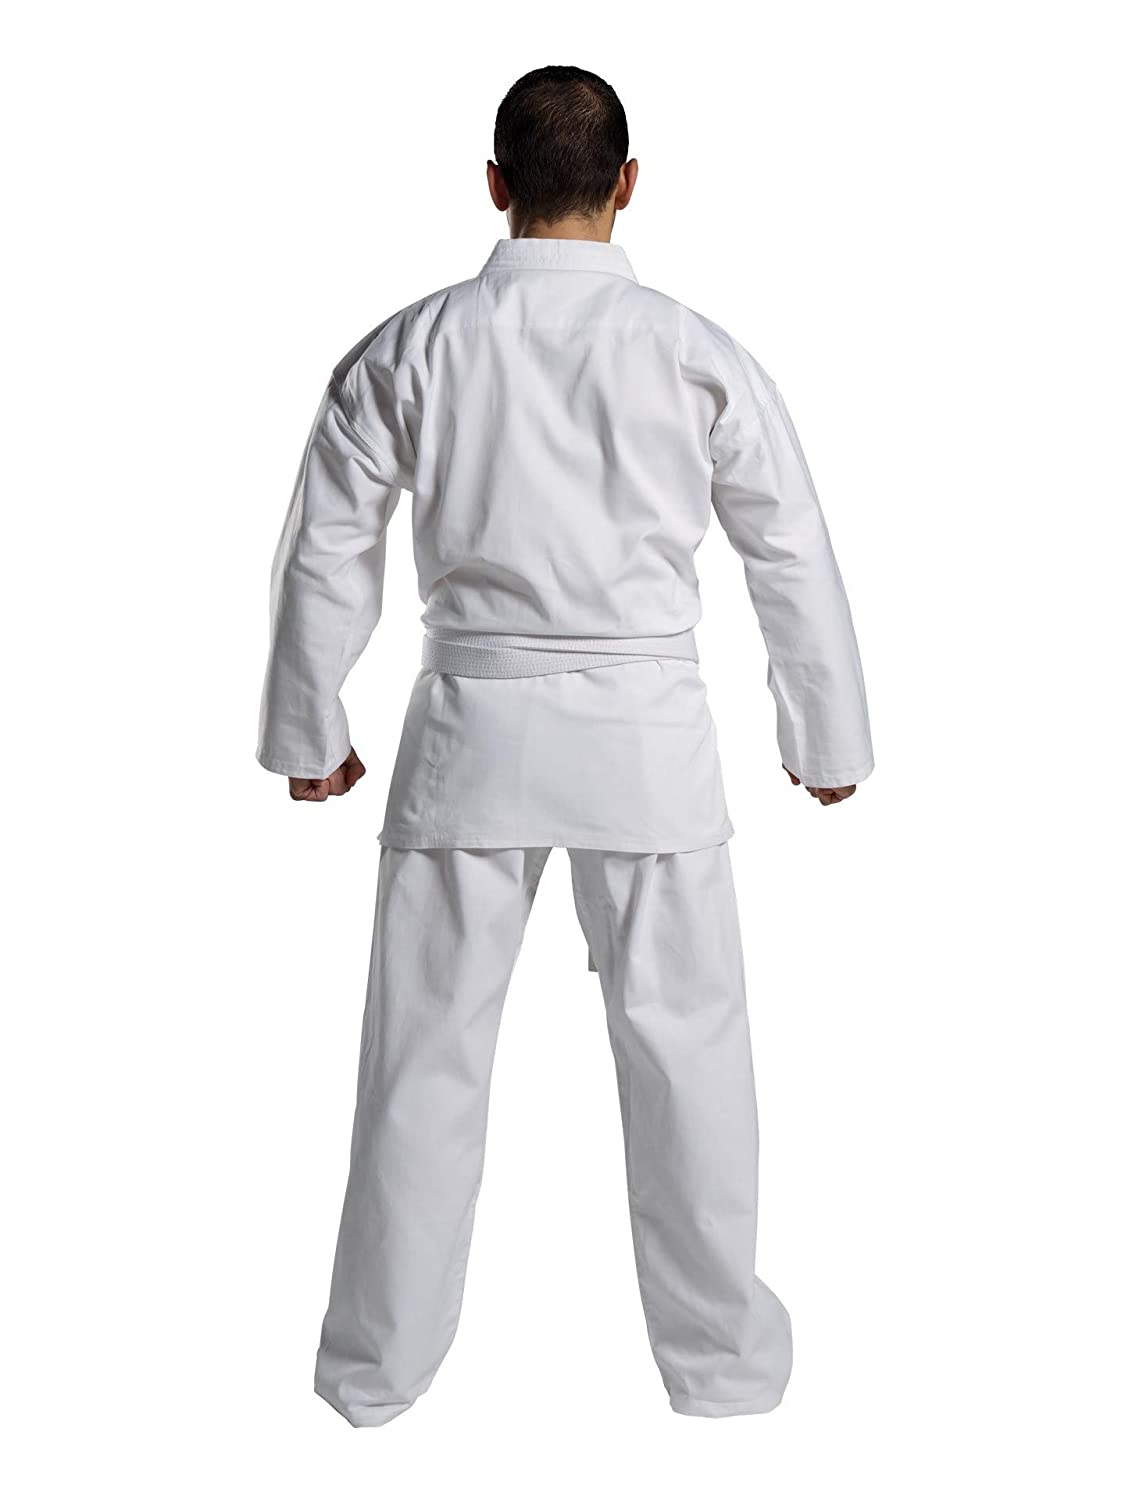 3e49011ea KWON Kampfsportanzug Taekwondo   Karate 8 OZ  Amazon.de  Sport ...